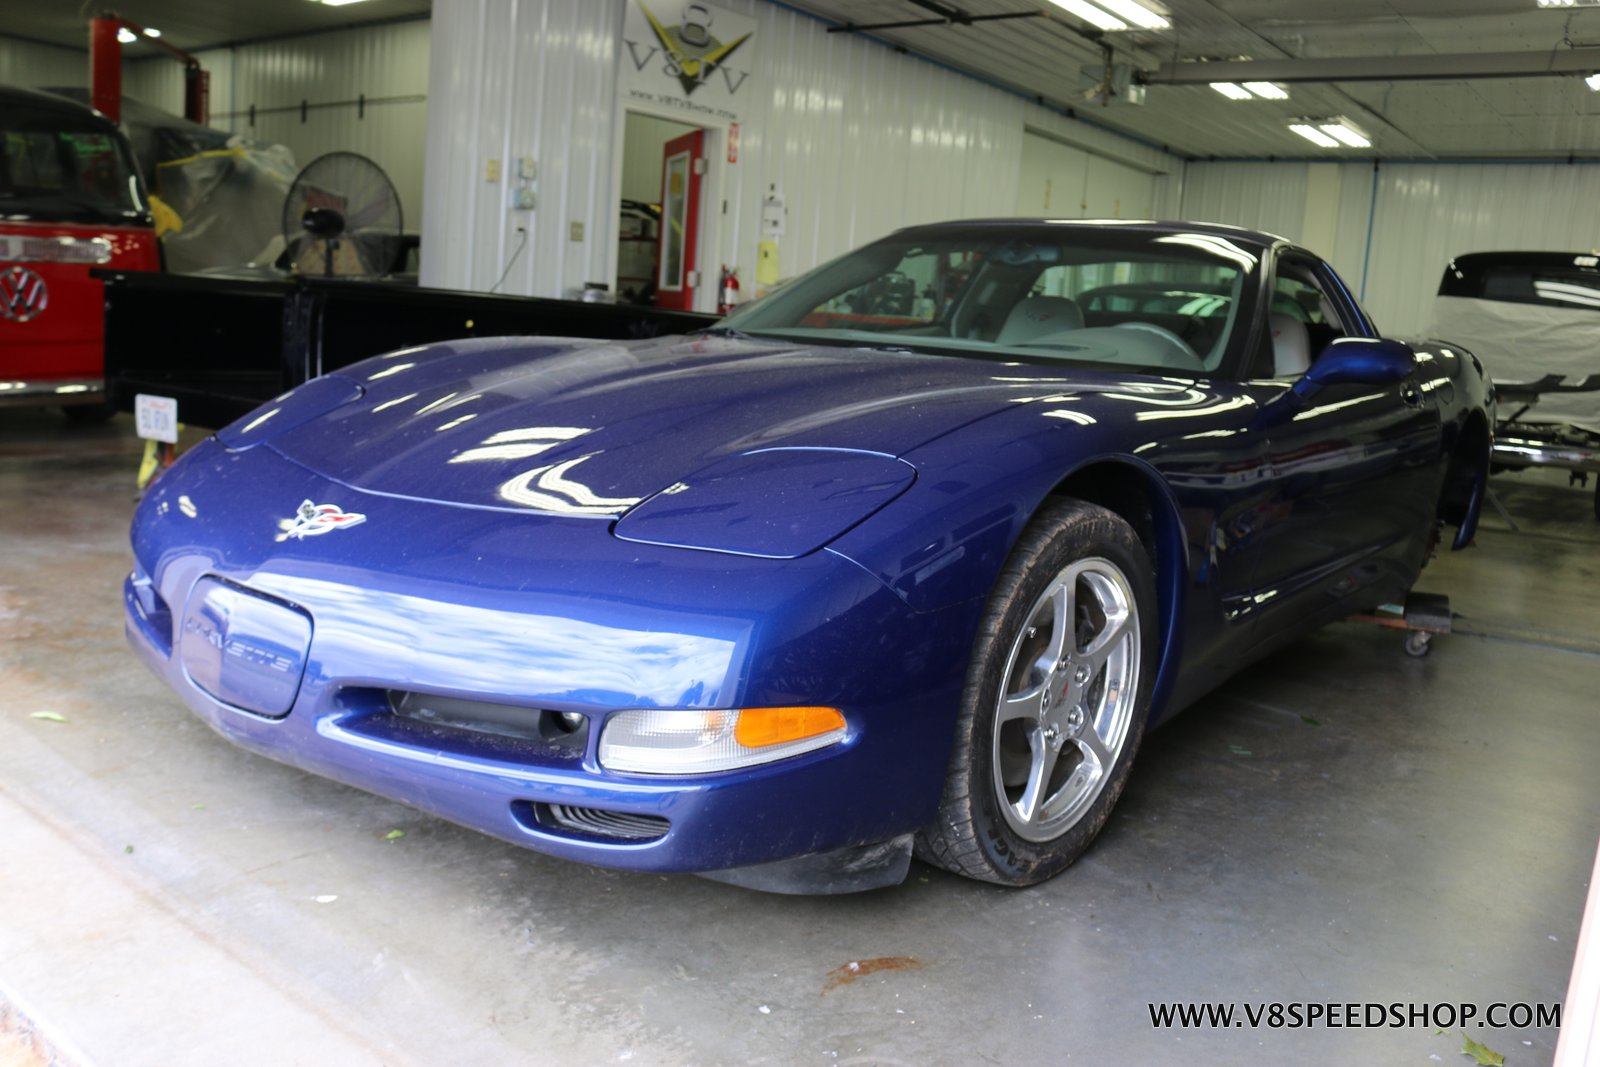 2004 Chevrolet Corvette Repair at V8 Speed & Resto Shop